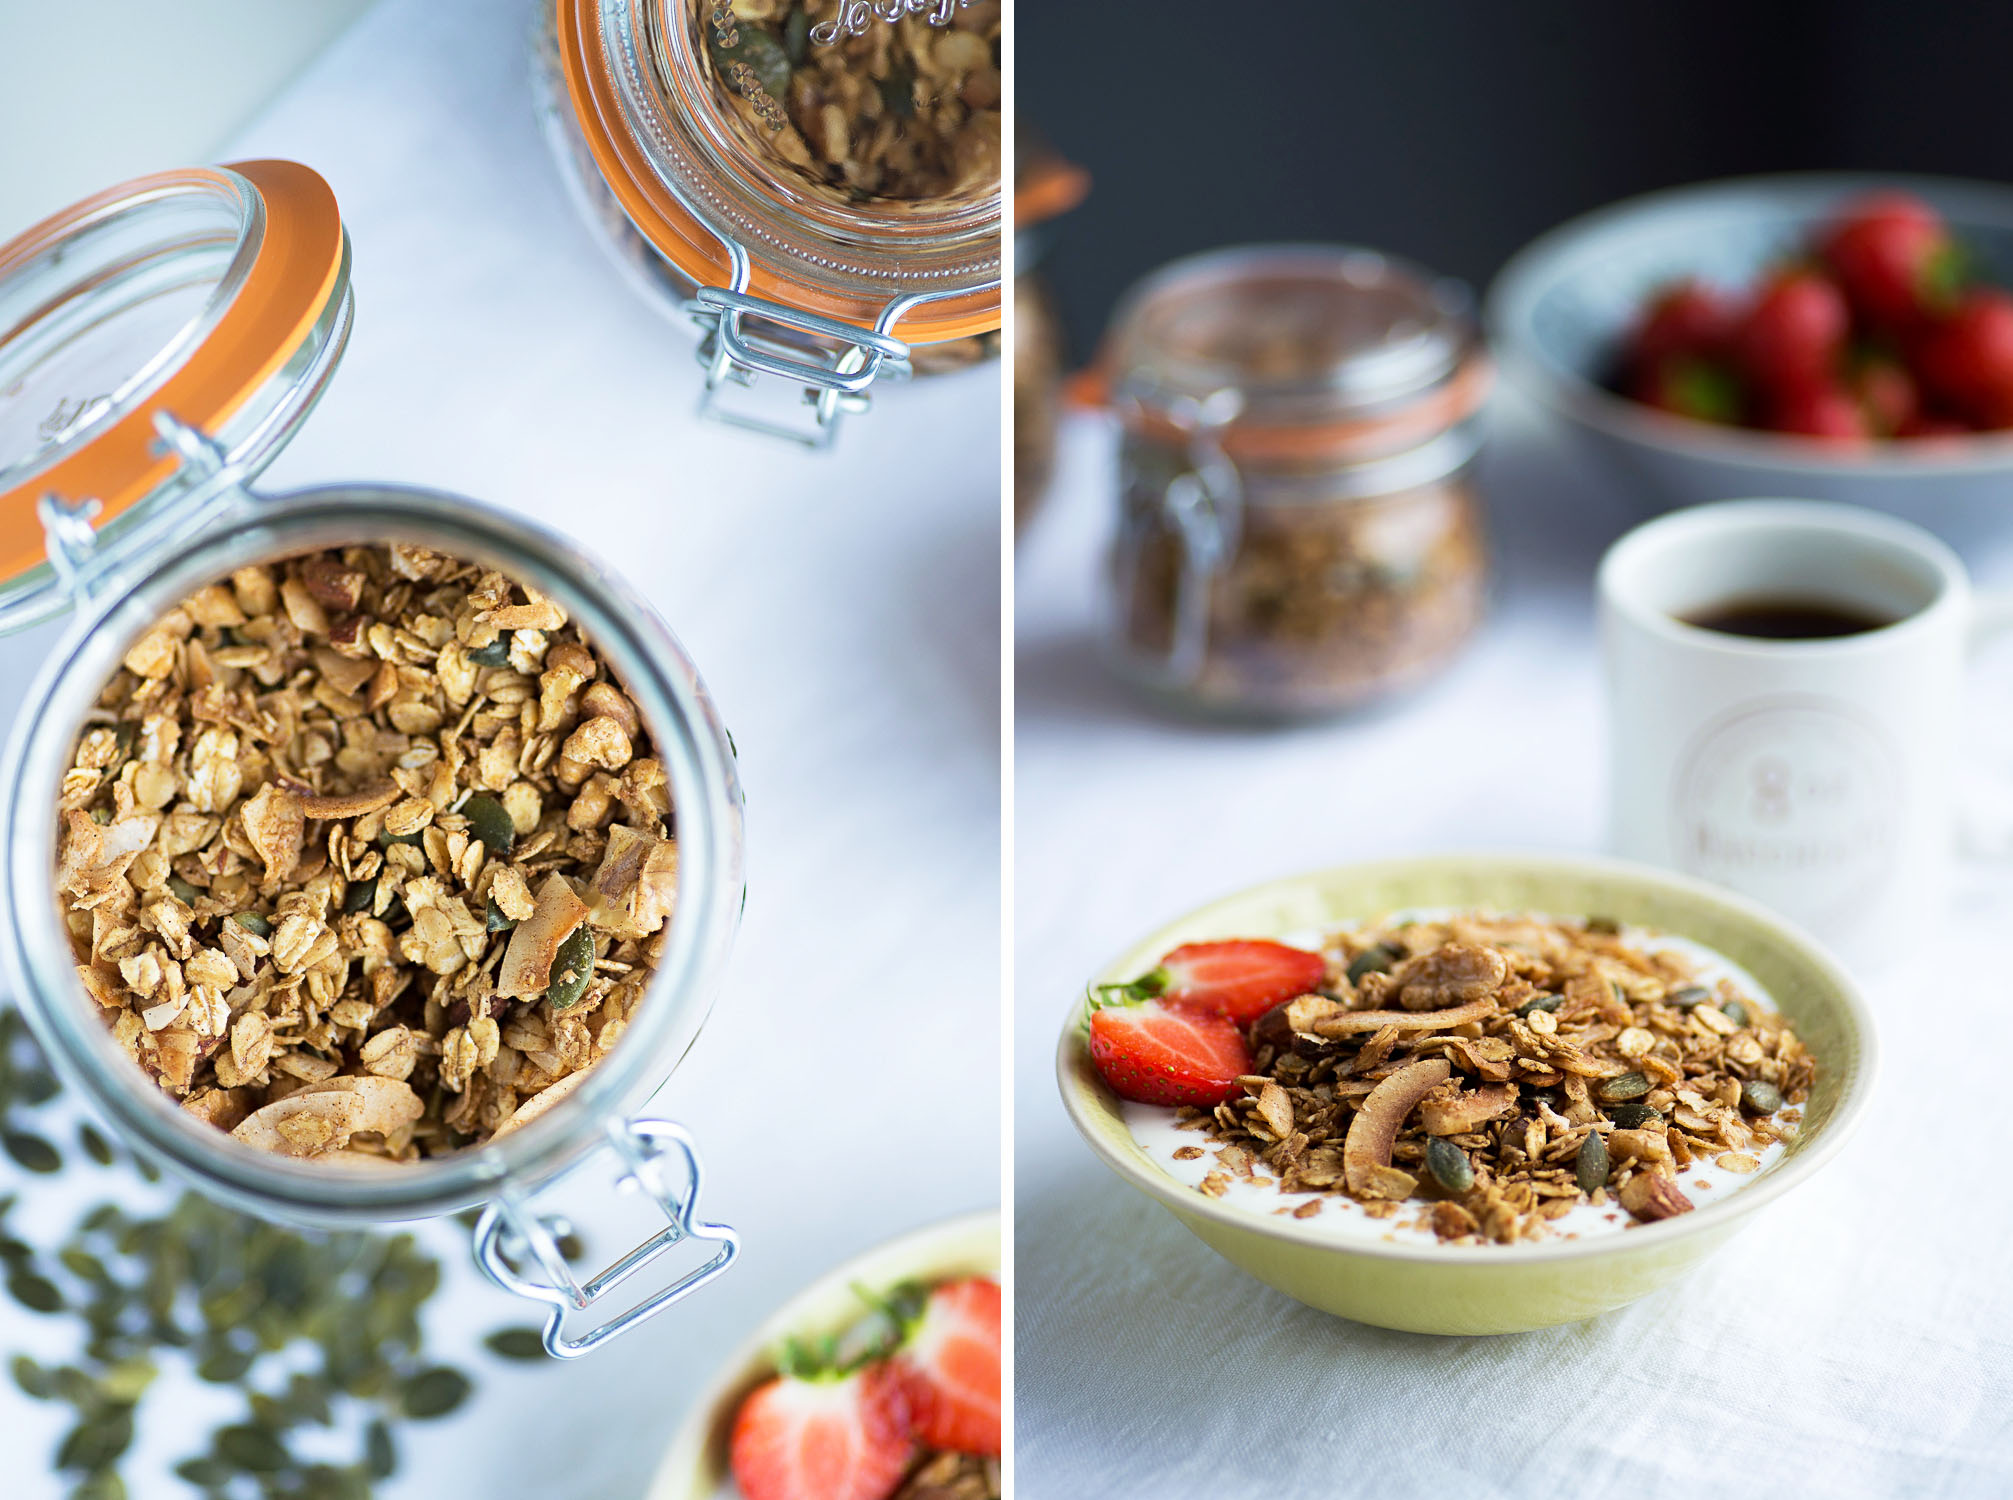 Homemade Nuts, Seeds and Coconut Granola